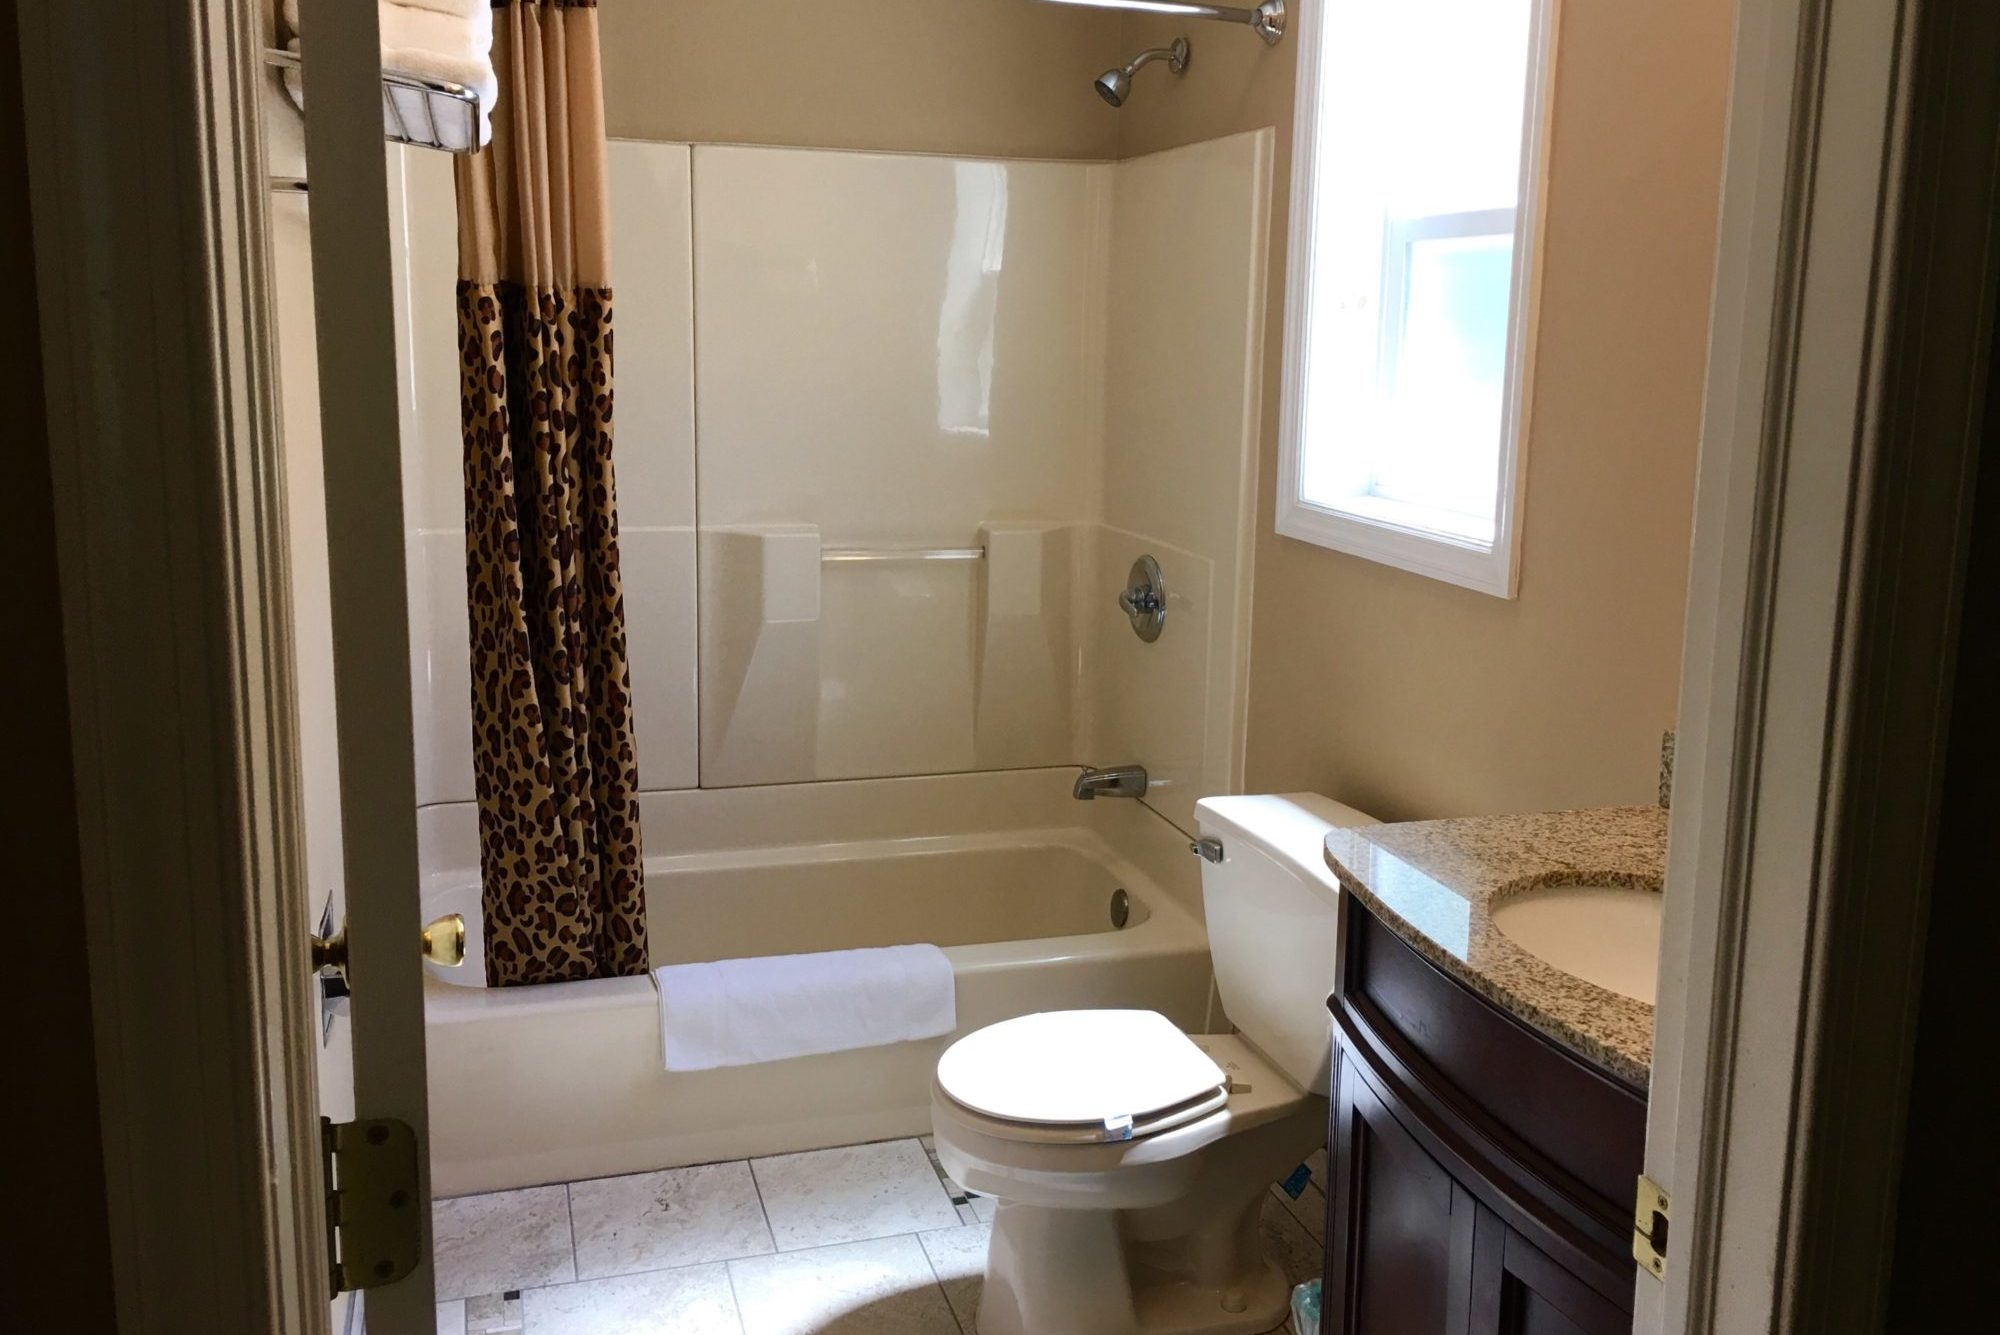 Shower tub with shower curtain, vanity unit, toilet, tiled flooring